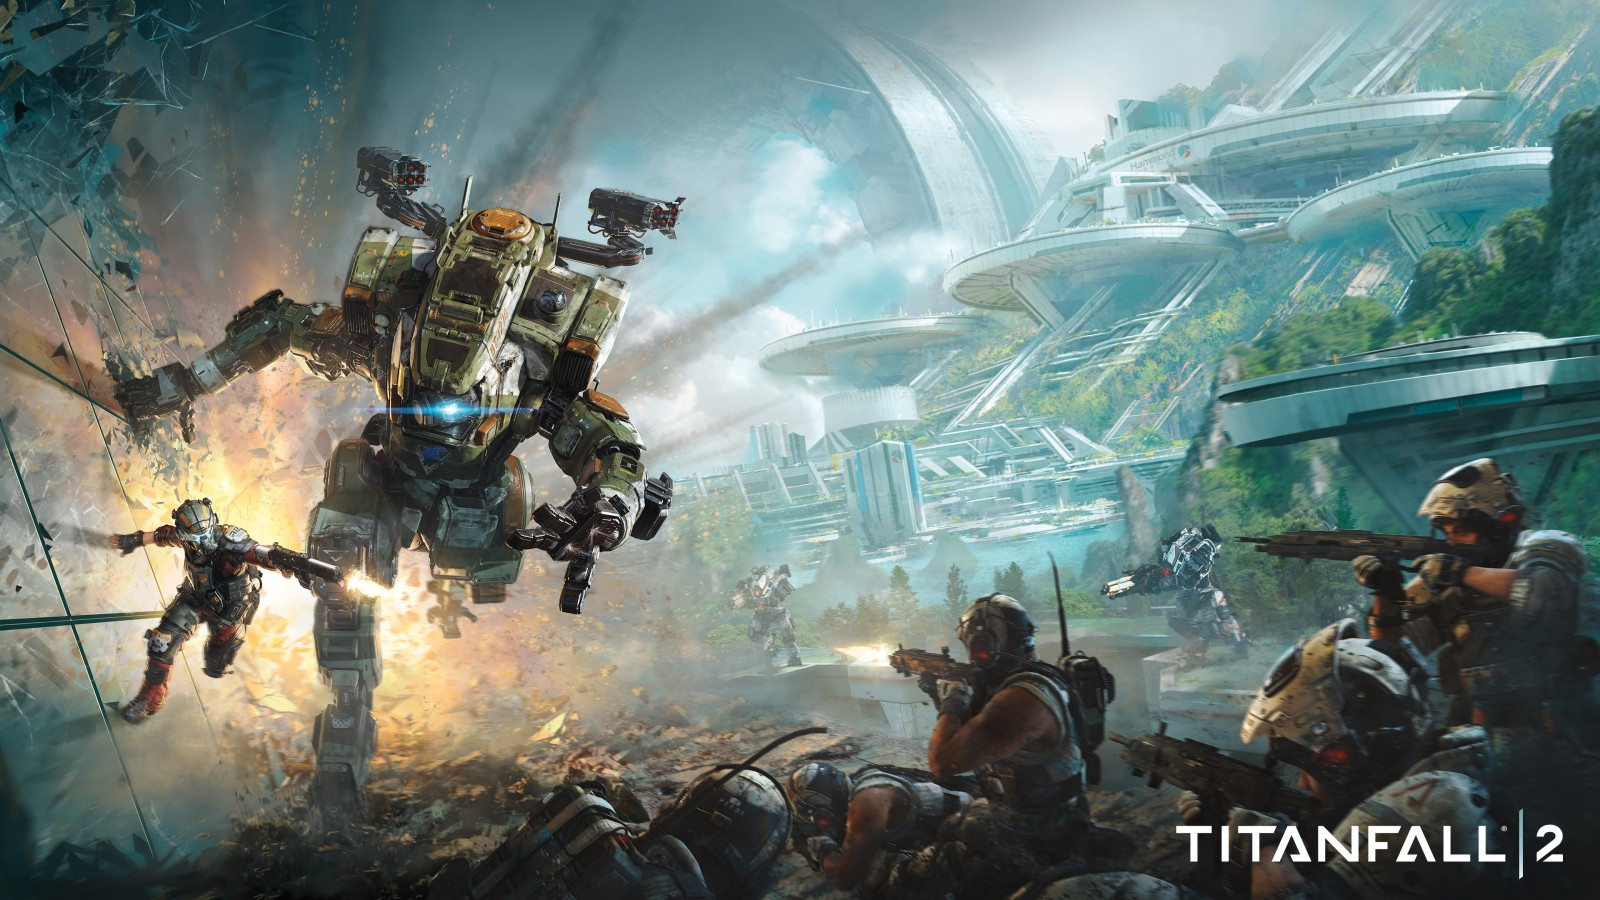 Iphone 6s Plus Wallpaper Hd Titanfall 2 2016 Game 4k Wallpapers Hd Wallpapers Id